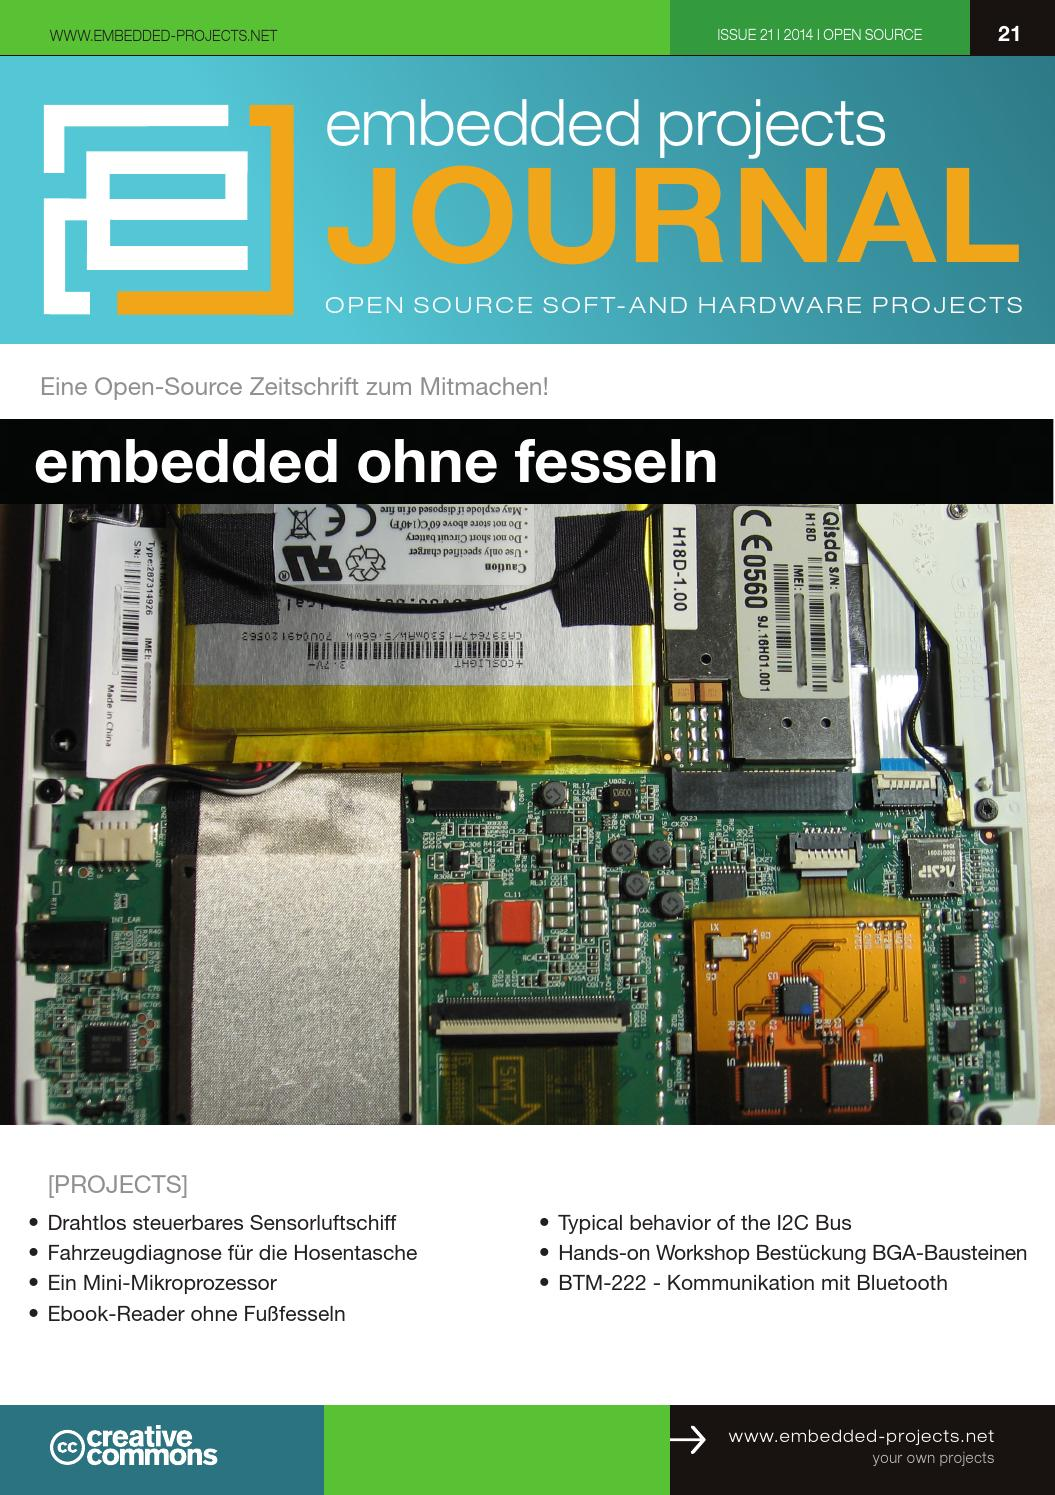 embedded projects Journal 21 by embedded projects GmbH - issuu